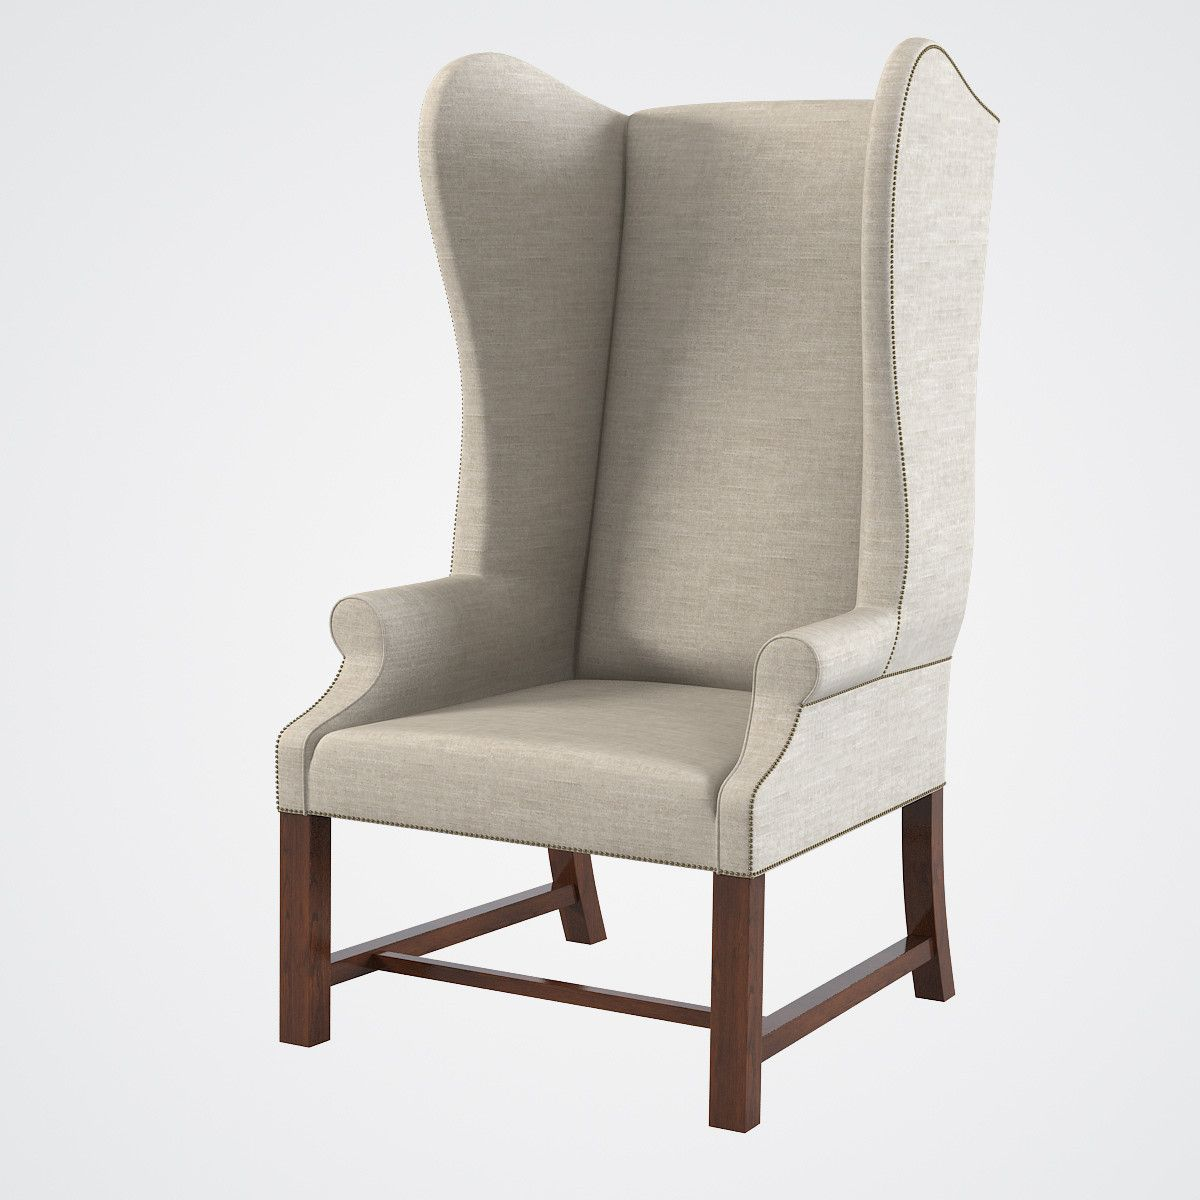 Chair option for beside console high back change out fabric